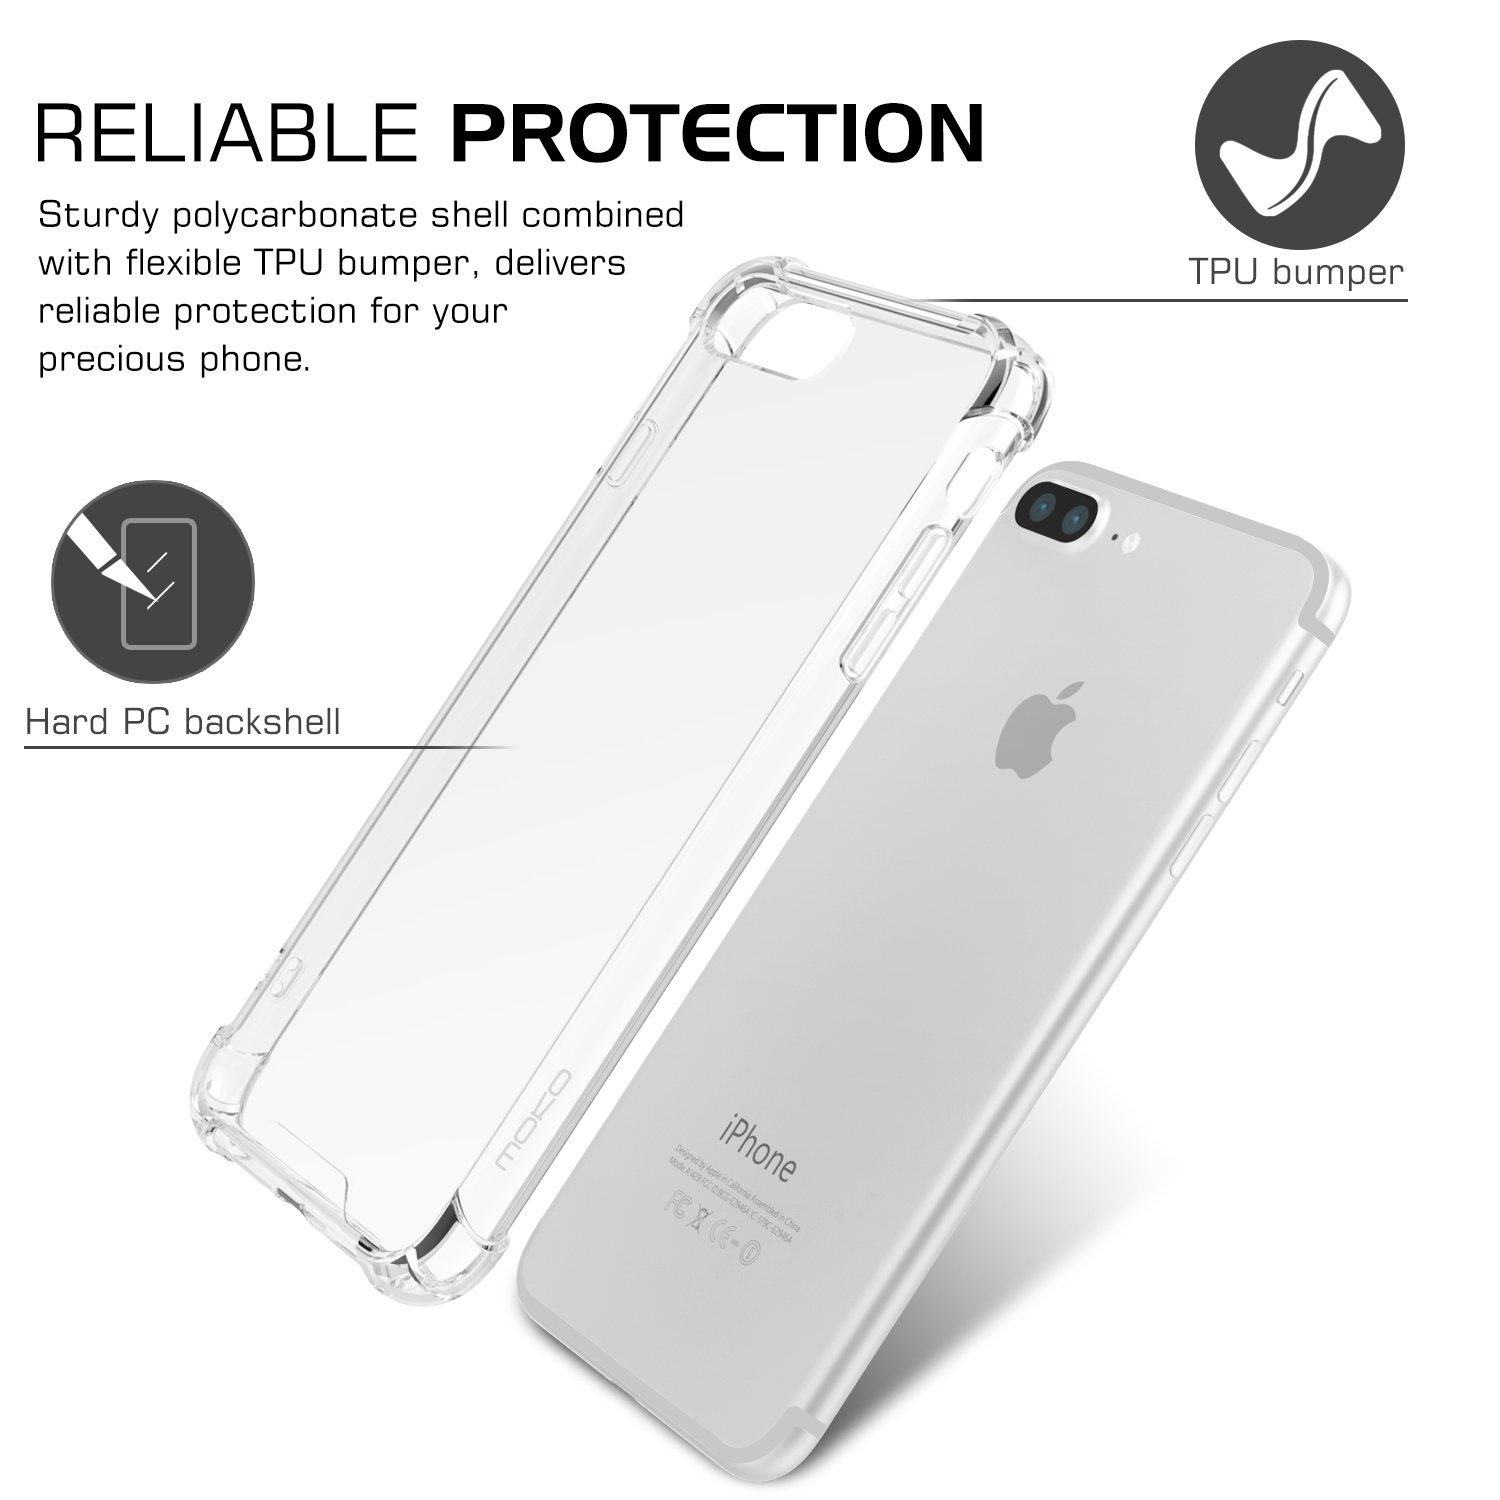 Thin Clear Transparent Case For iPhone X XS MAX XR 6 7 6S 8 Plus 5 se Phone Case For Redmi 4x note4 note5 redmi 5 6 plus 6a f1 in Fitted Cases from Cellphones Telecommunications